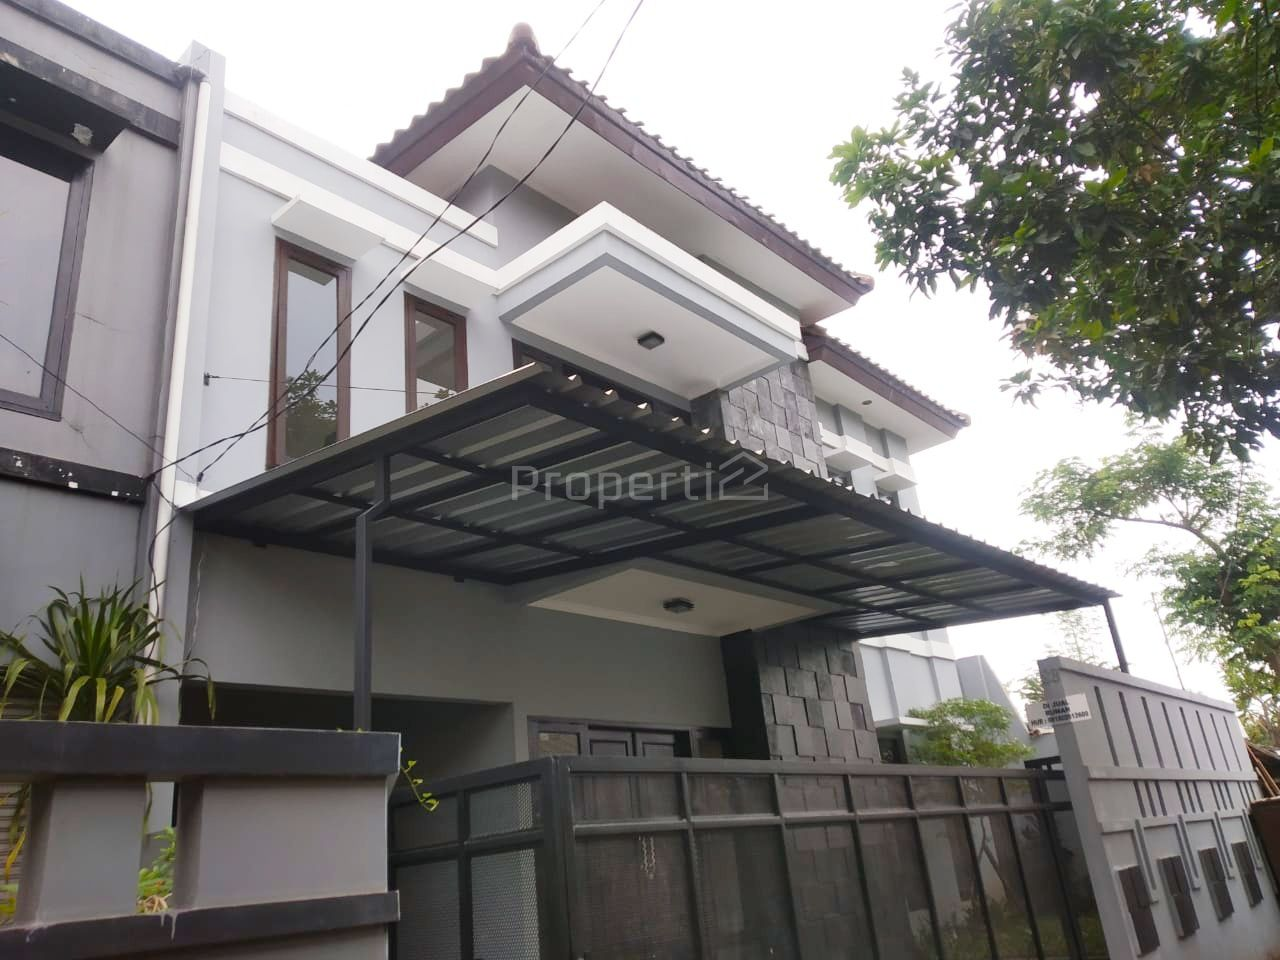 New House in South Cipete, DKI Jakarta